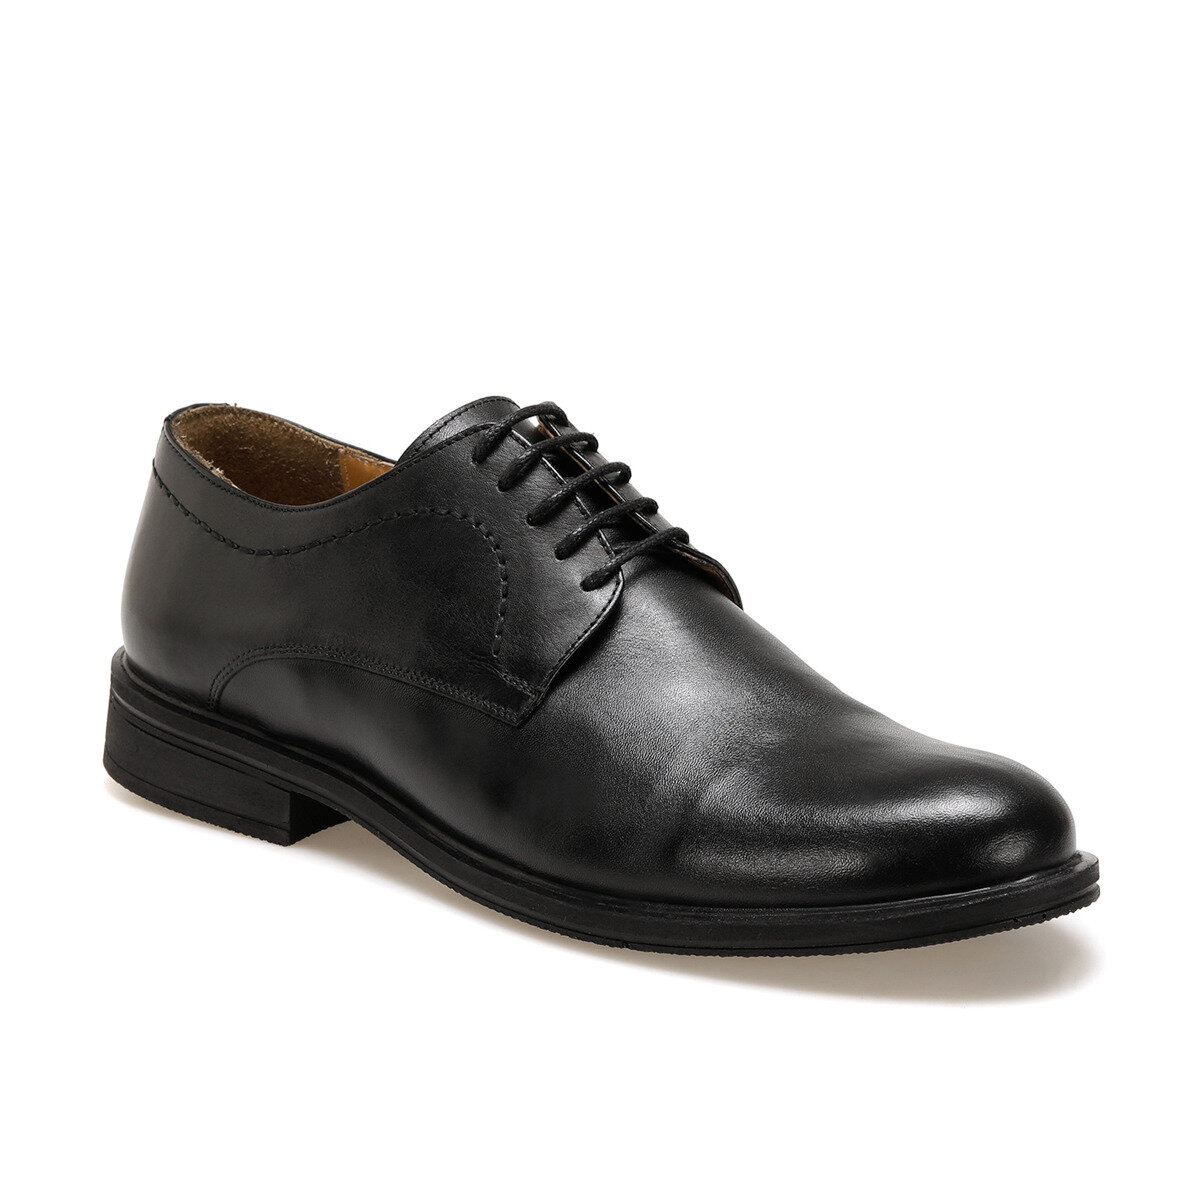 FLO 468 Black Men Dress Shoes Garamond